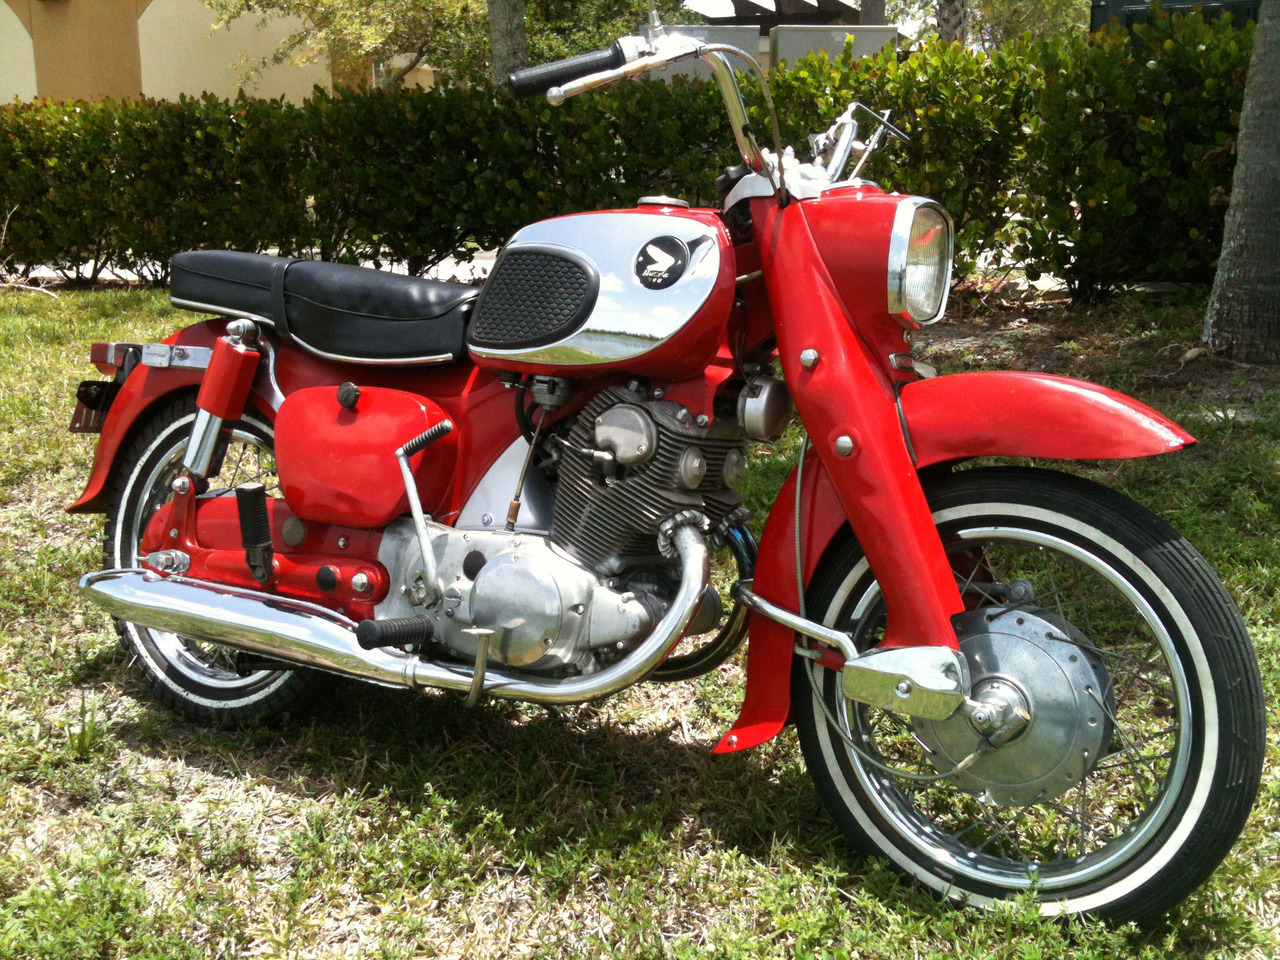 Page 30 Honda For Sale Price Used Motorcycle Supply Complete Electrical Wiring Diagram Of 1970 1973 Cl100 1965 Dream 300